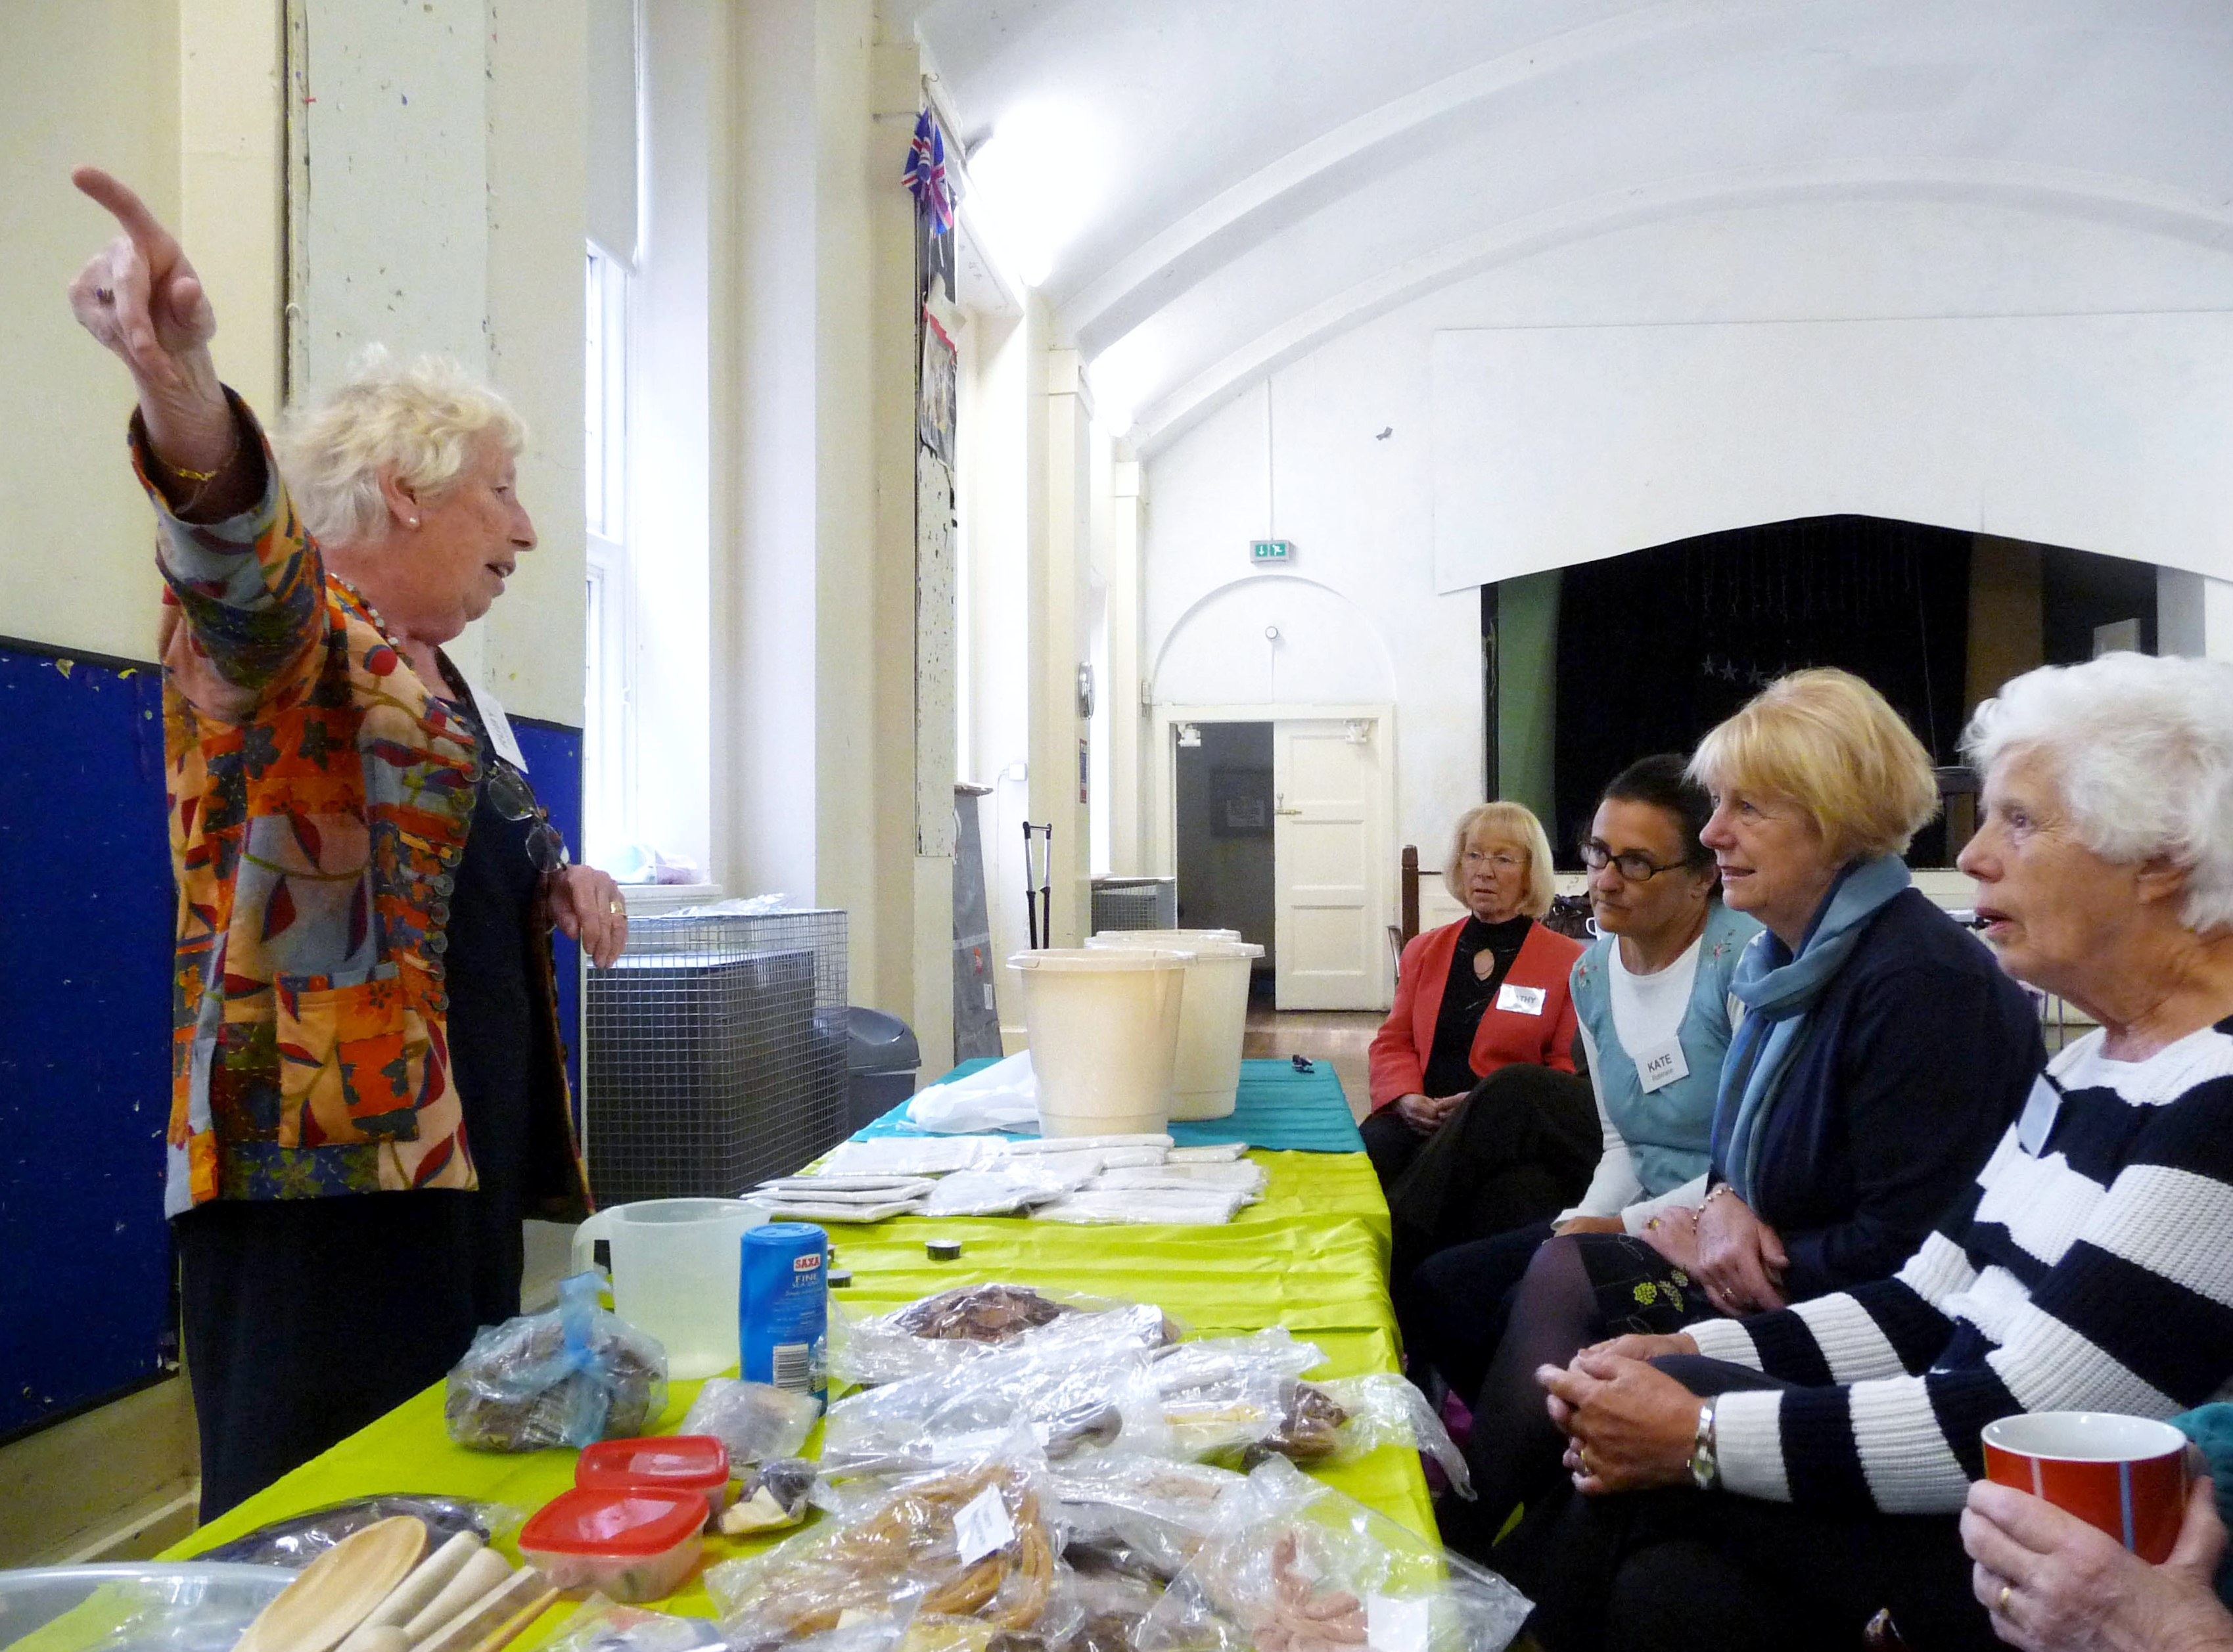 Ruby Porter MBE has the group entralled as she tells them about natural dyes